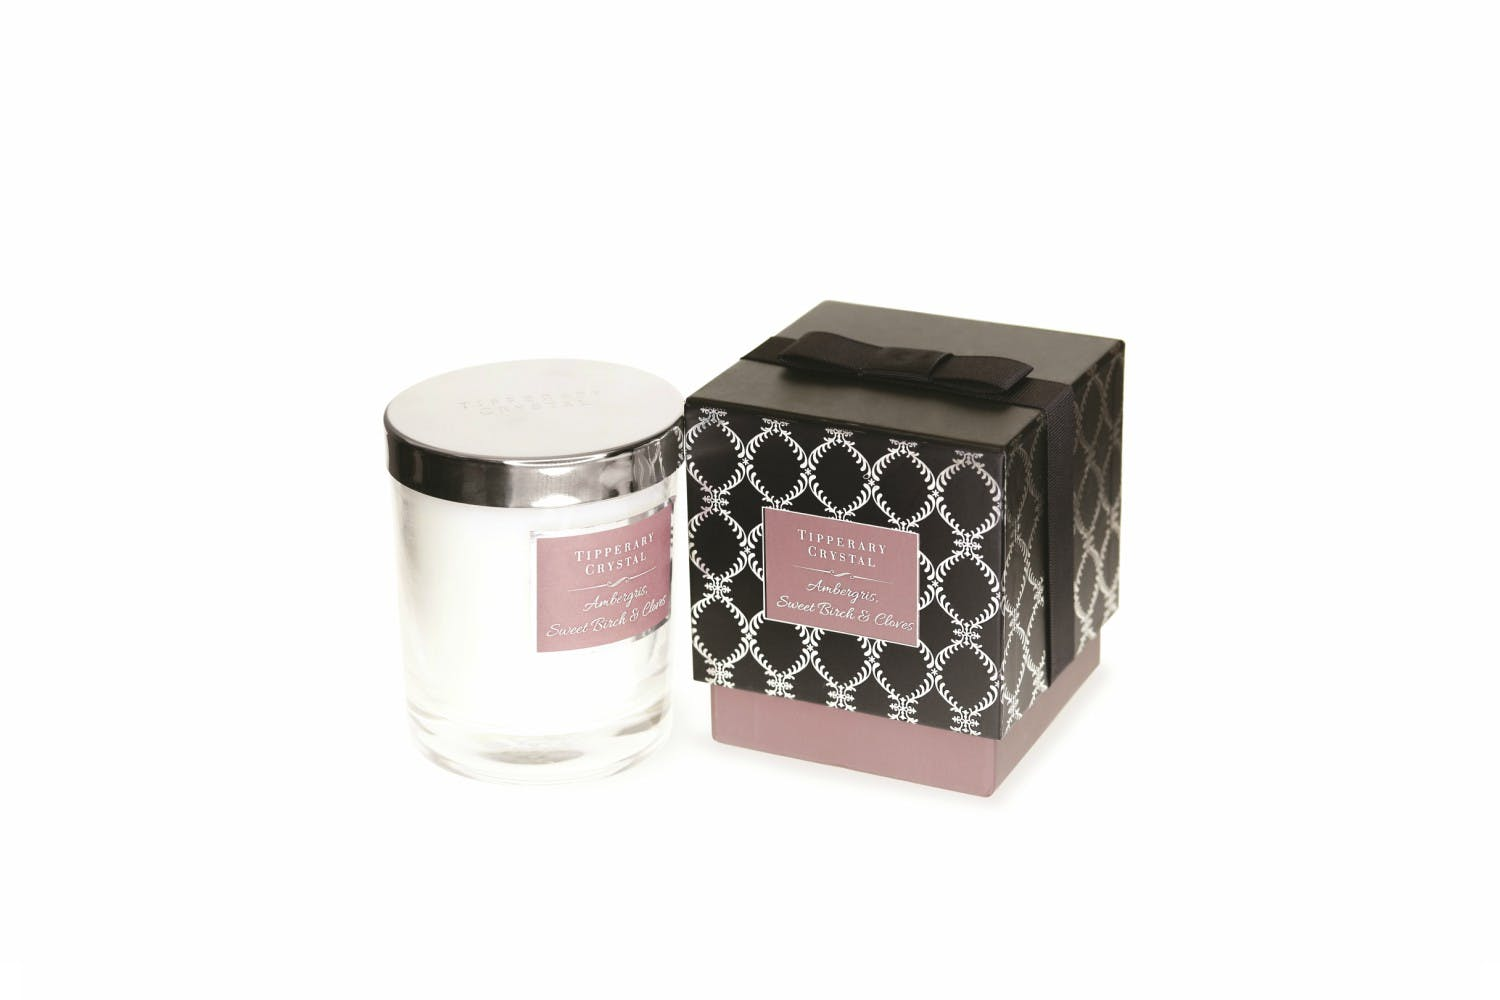 Tipperary Crystal Luxury Candle | Ambergris Sweet Birch & Clove